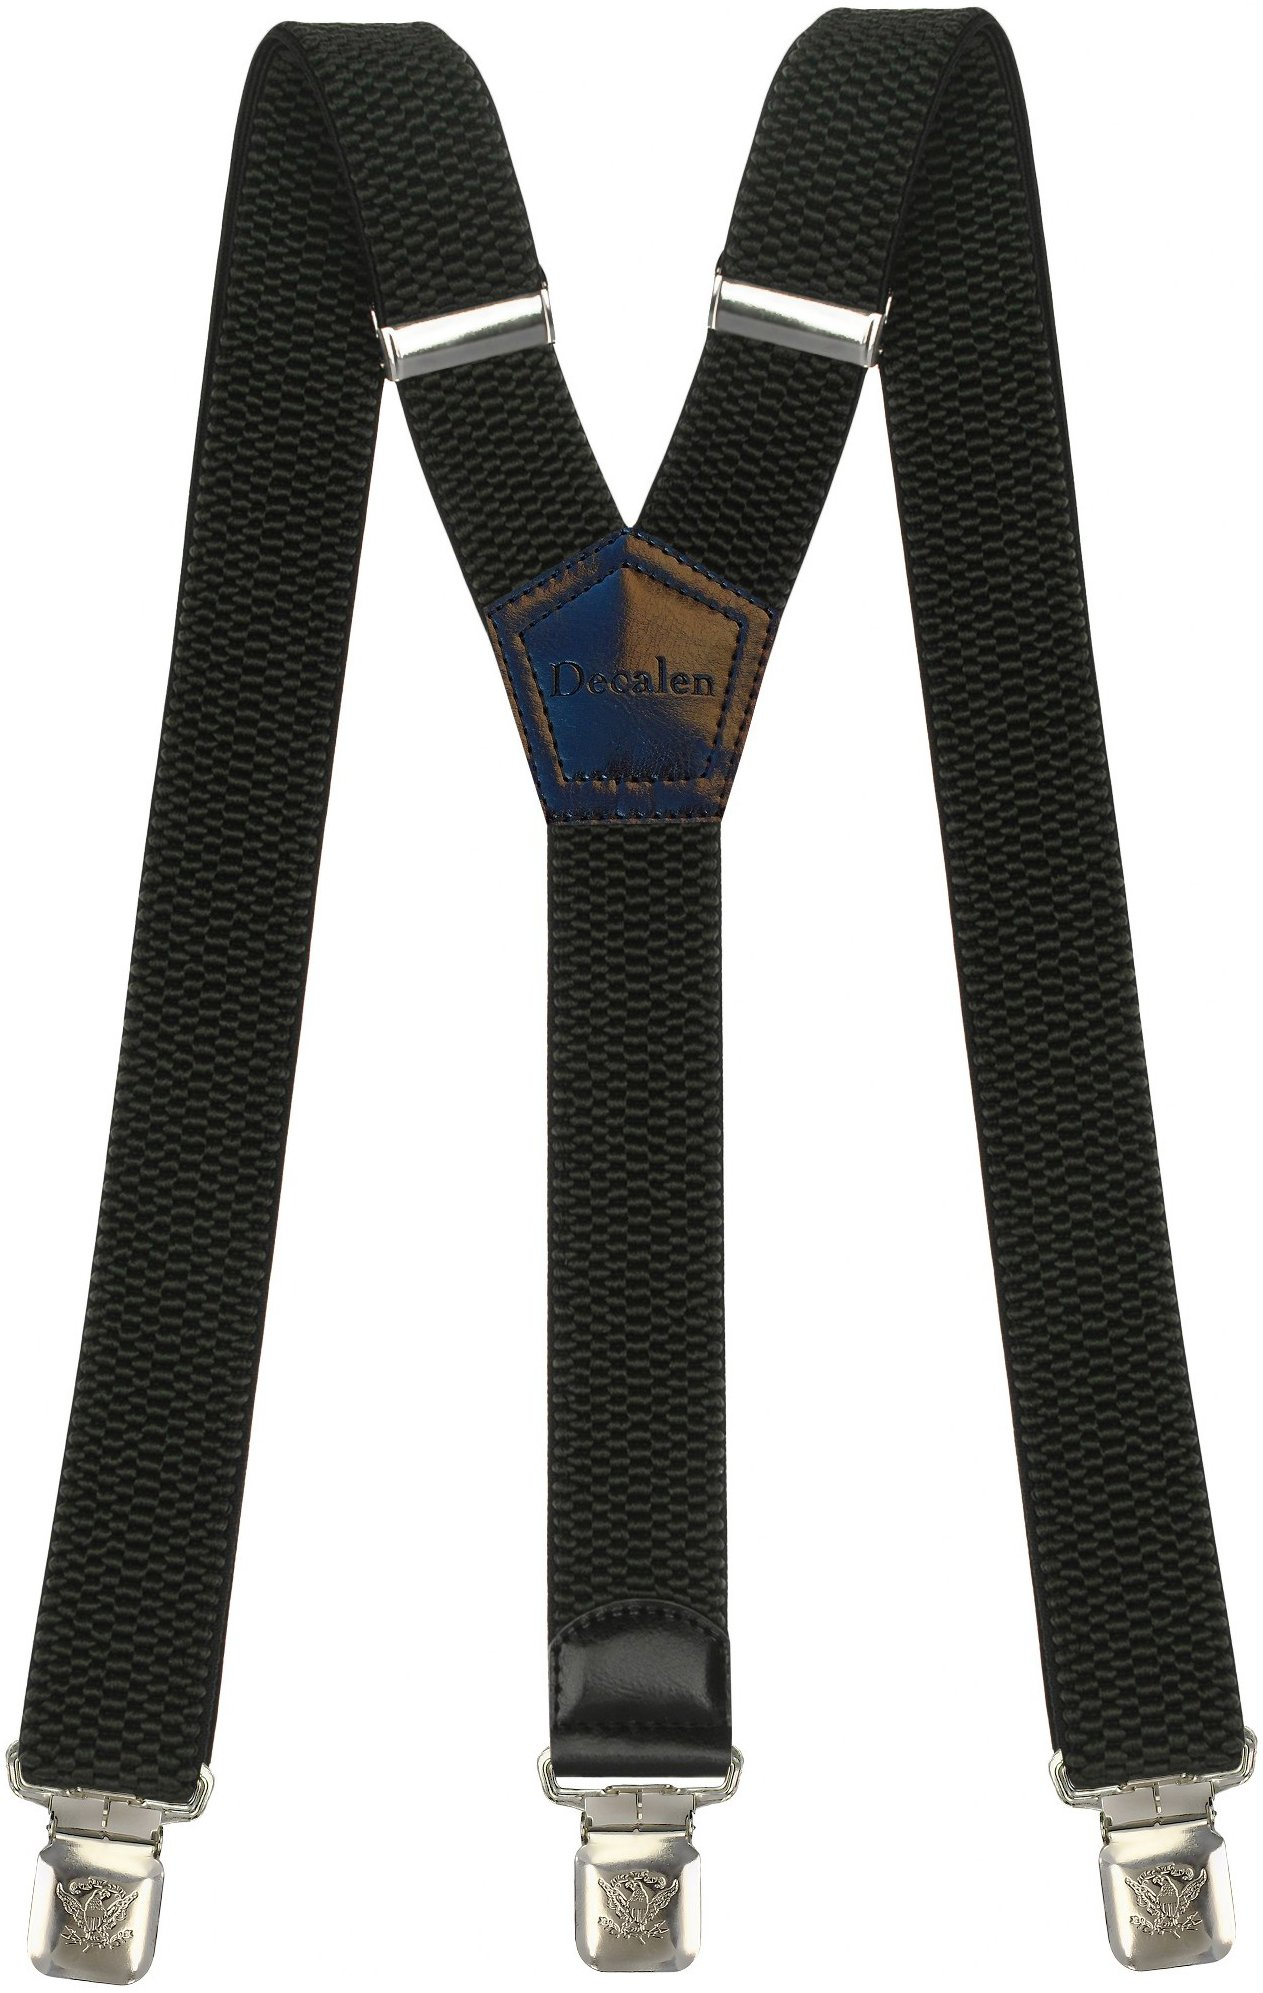 Mens Suspenders Wide Adjustable and Elastic Braces Y Shape with Very Strong Clips - Heavy Duty (Dark Green)